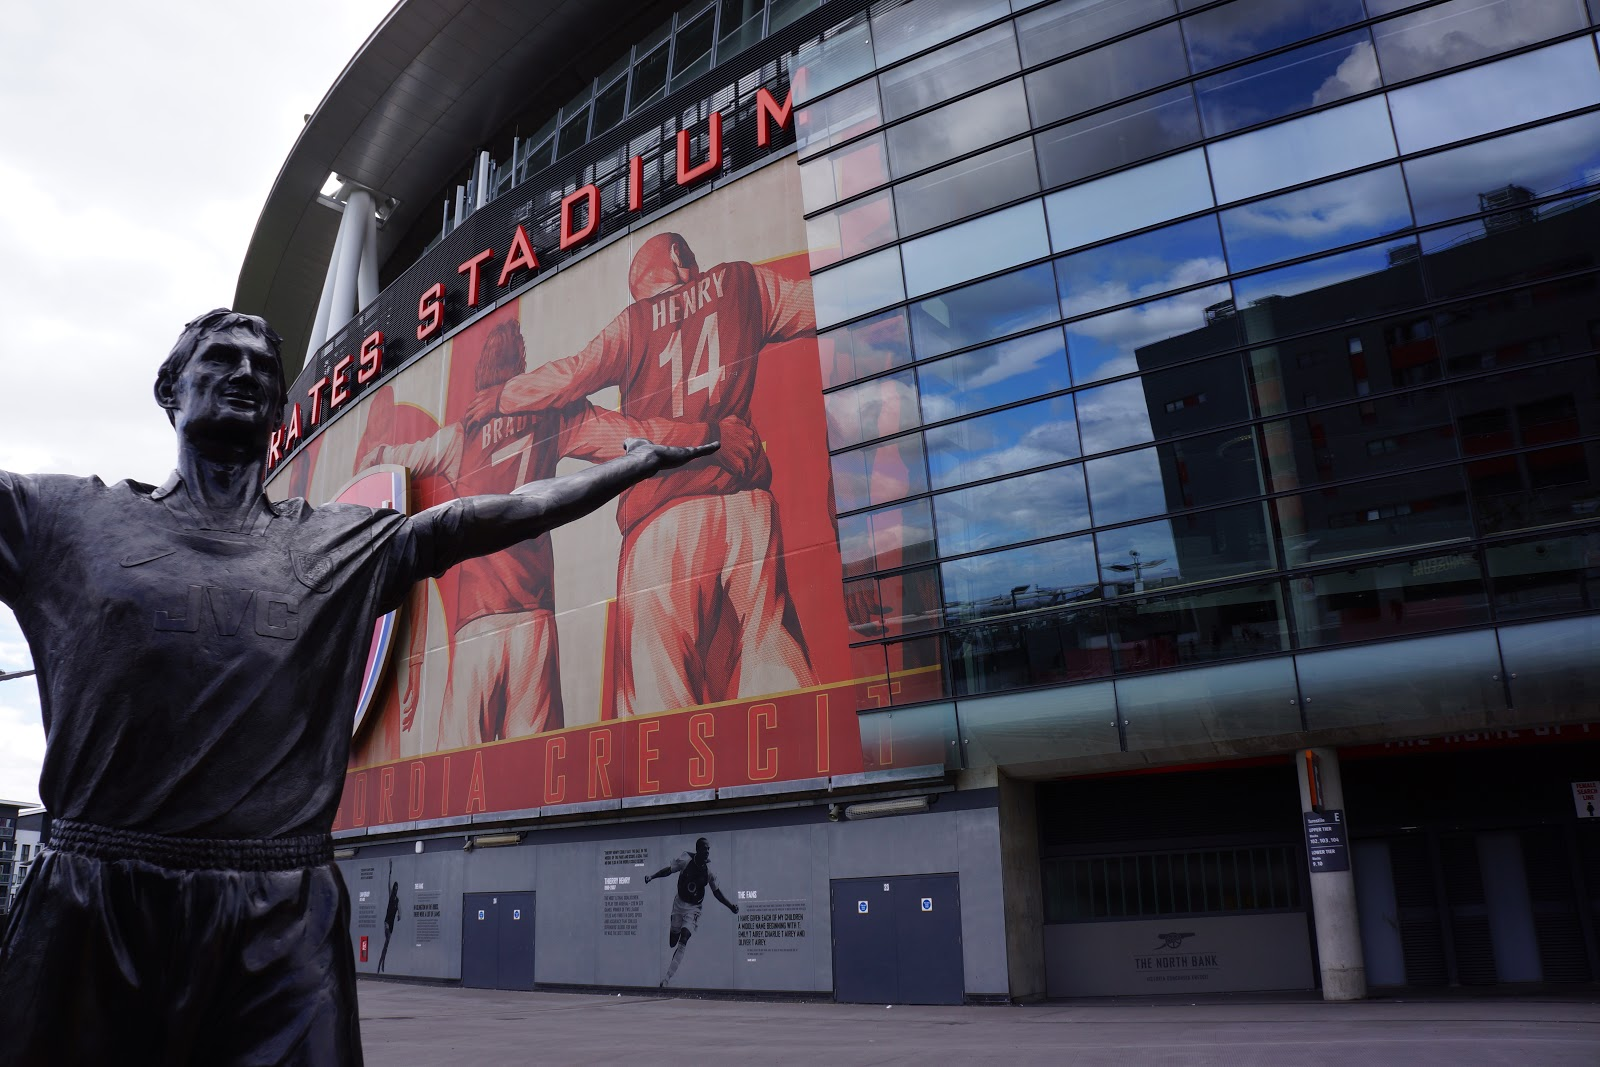 Arsenal Stadium statue outside